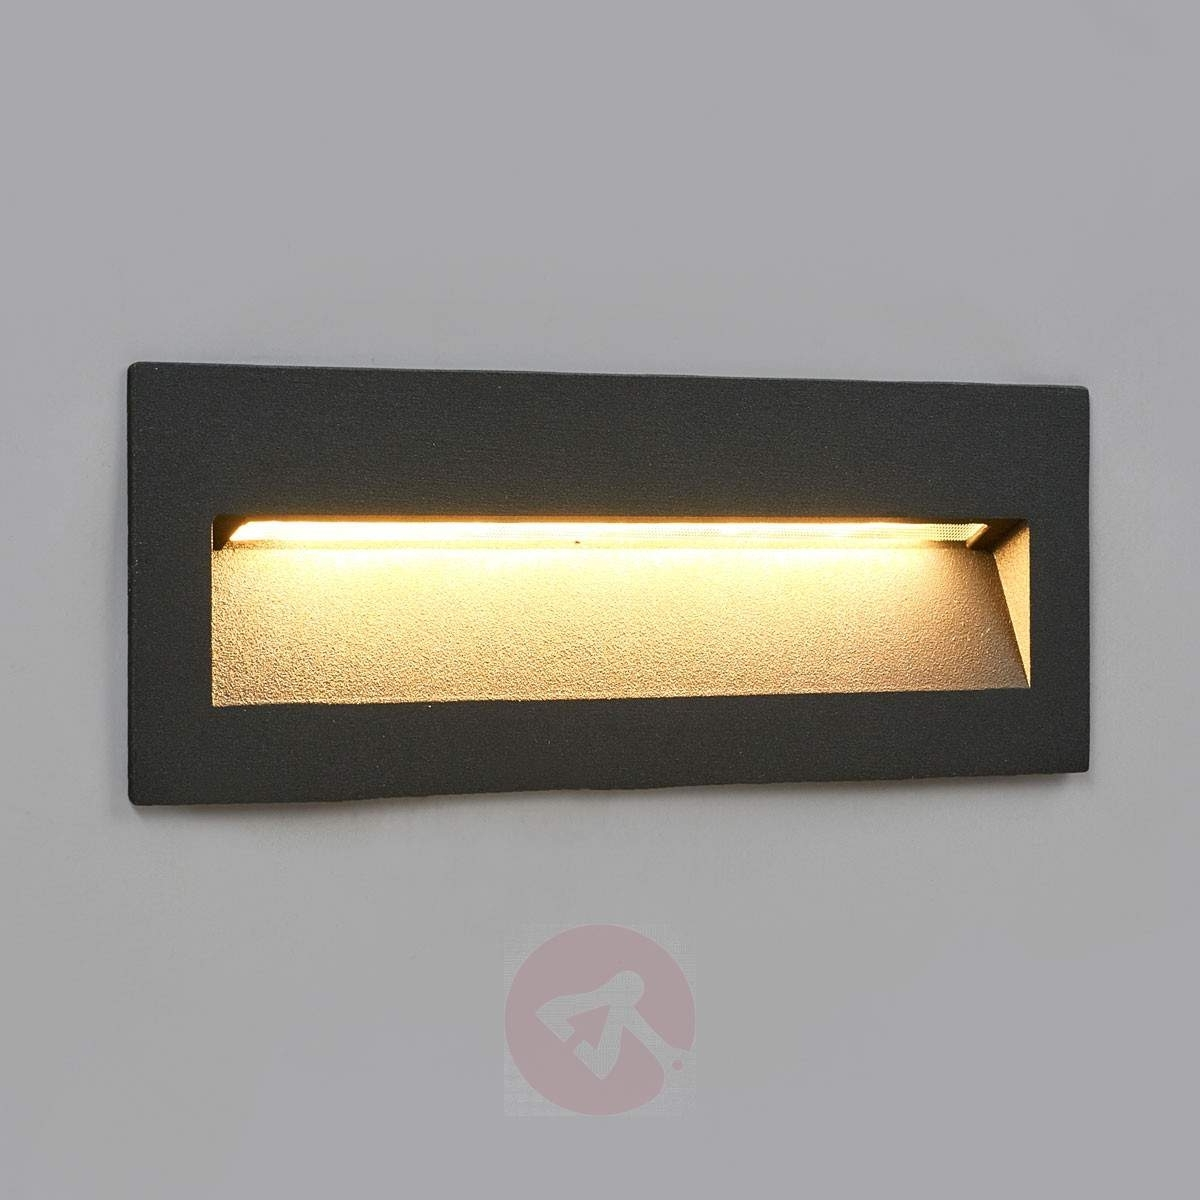 Dark Led Recessed Light Loya For Outdoor Walls (View 4 of 20)